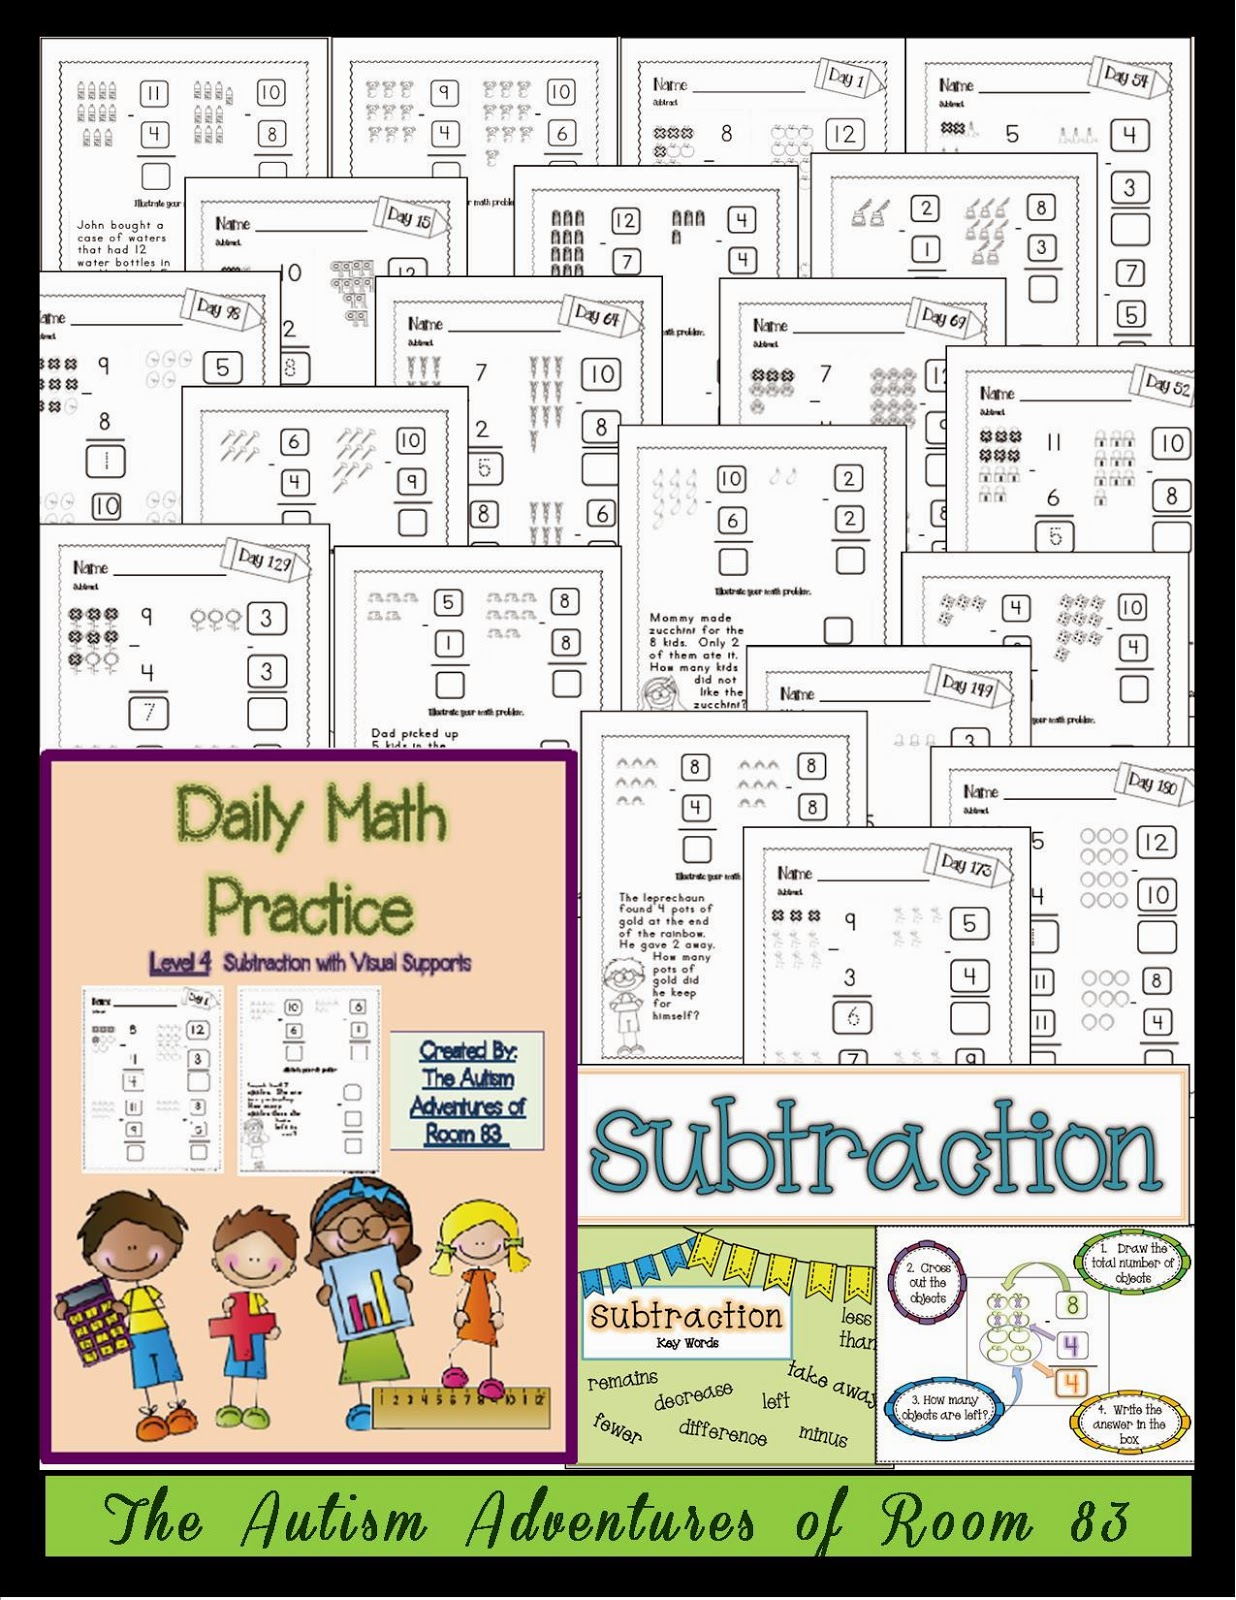 math worksheet : daily math practice level 4 subtraction with visuals  the  : Daily Math Practice Worksheets